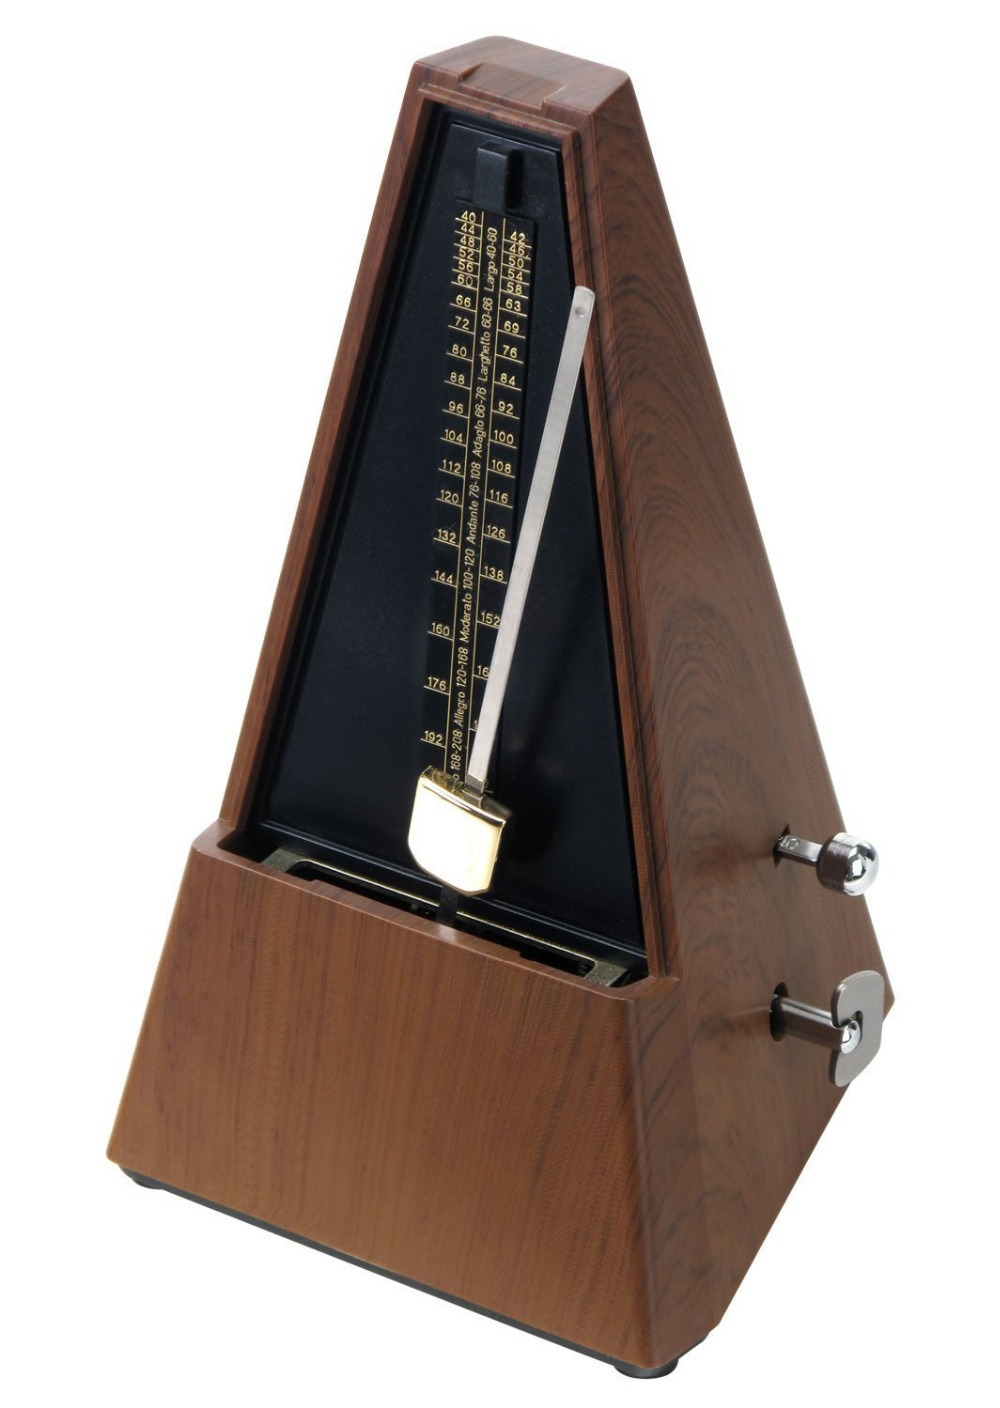 guitar mechanical pendulum metronome online audible click bell ring antique vintage style for. Black Bedroom Furniture Sets. Home Design Ideas